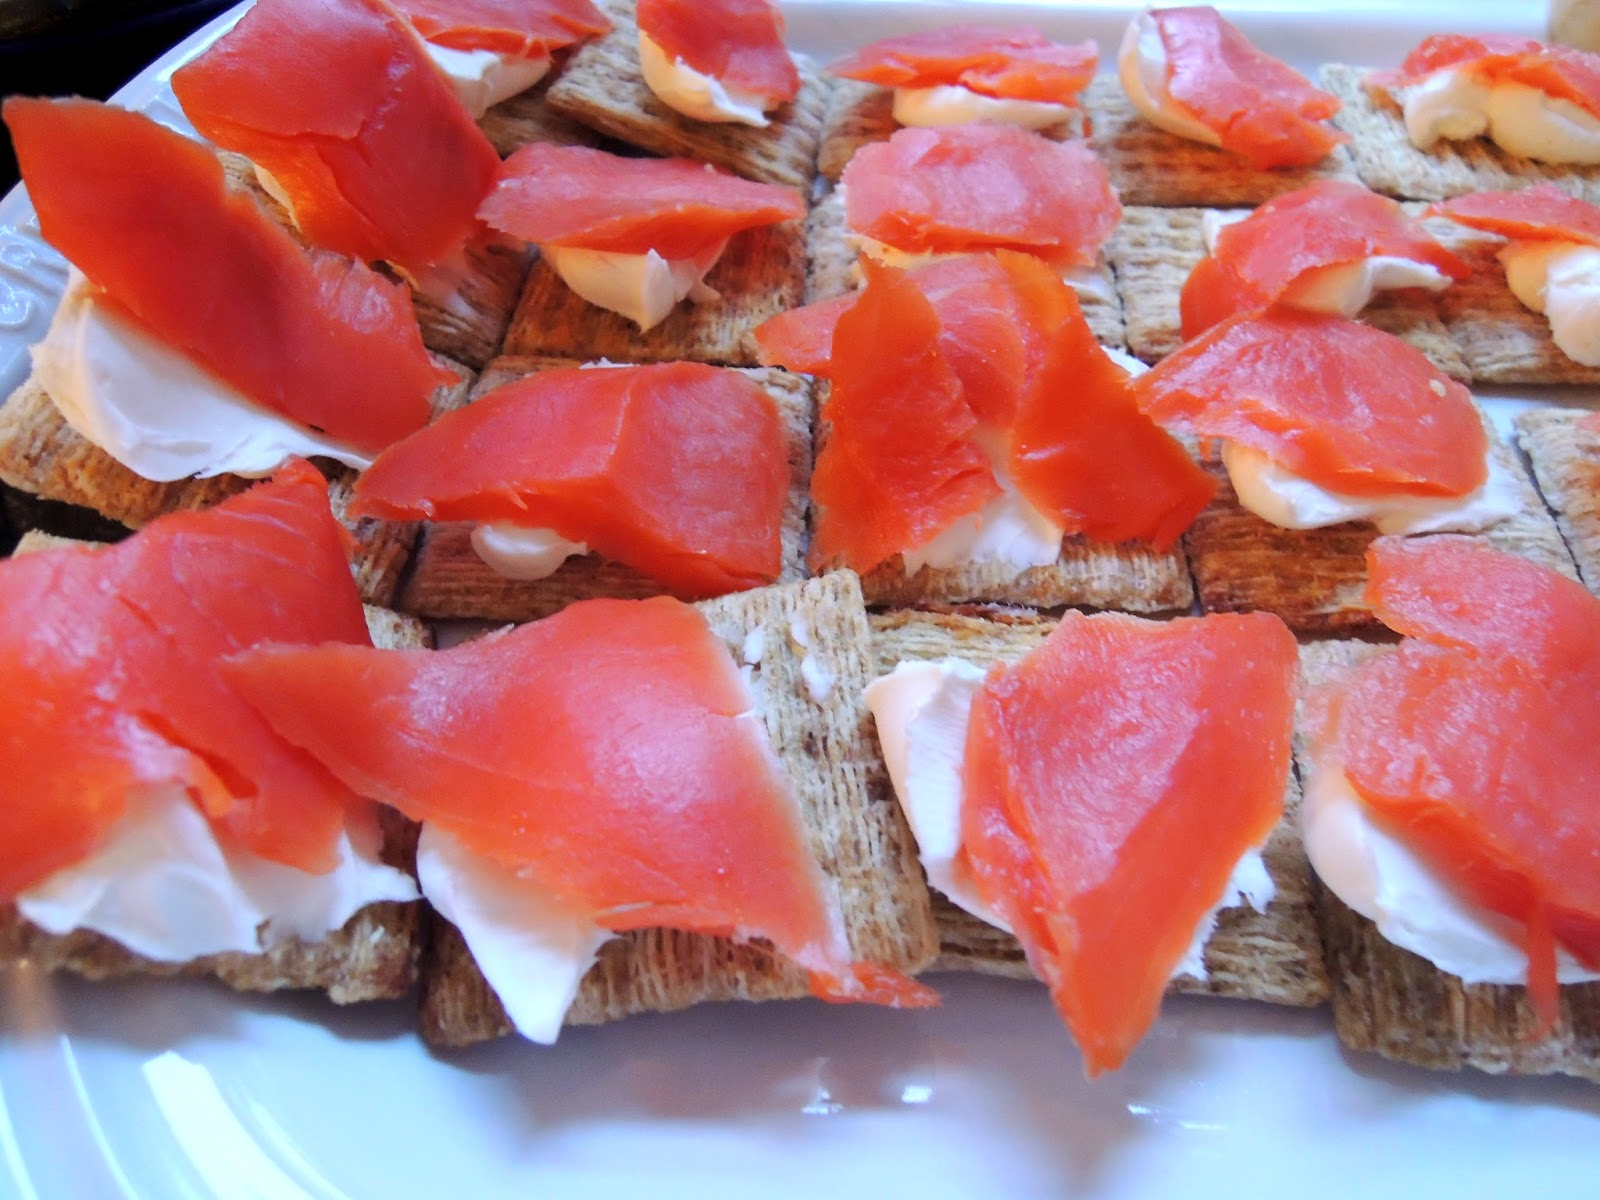 Cream cheese and salmon on triscuits